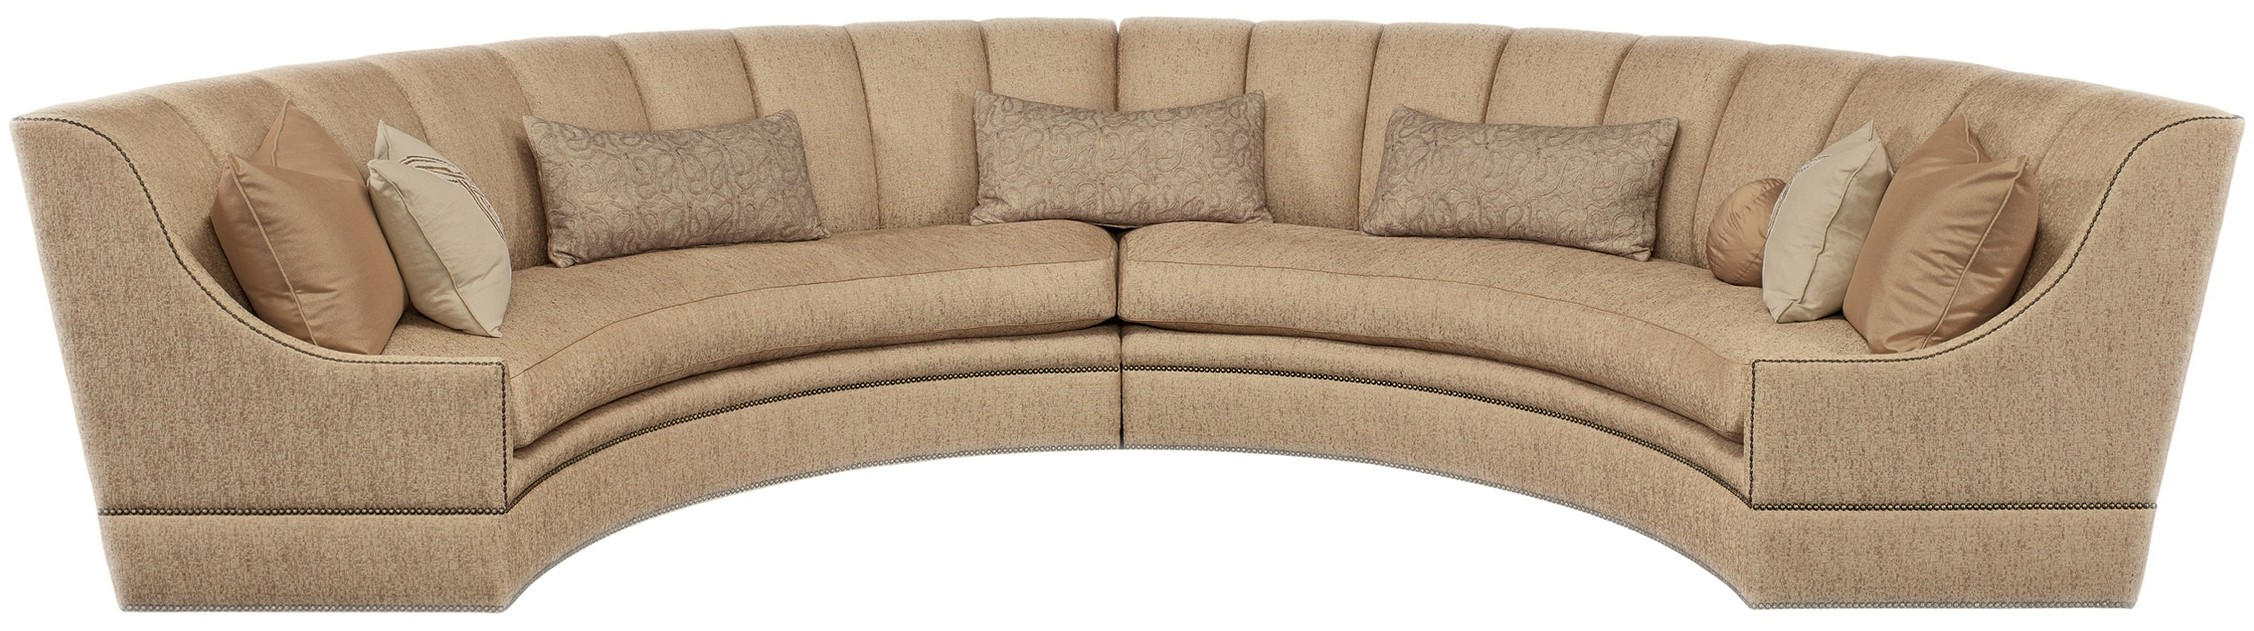 Terrific Half Round Luxury Sectional Sofa Gmtry Best Dining Table And Chair Ideas Images Gmtryco